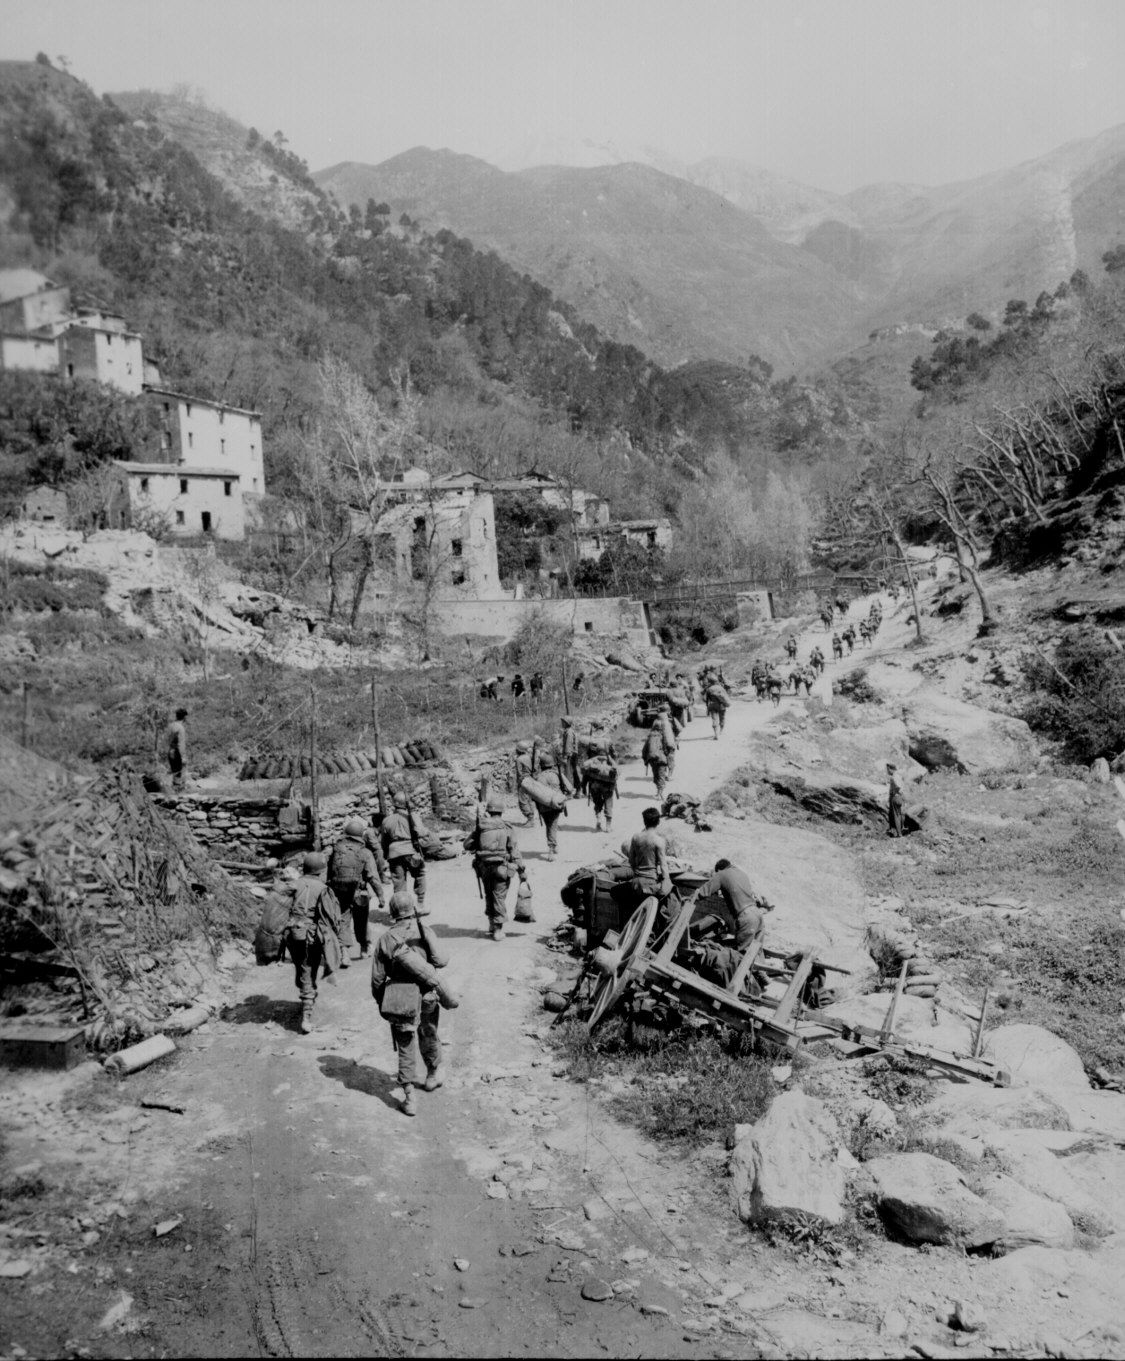 """""""Moving up through Prato, Italy, men of the 370th Infantry Regiment, have yet to climb the mountain which lies ahead."""" Bull, April 9, 1945."""